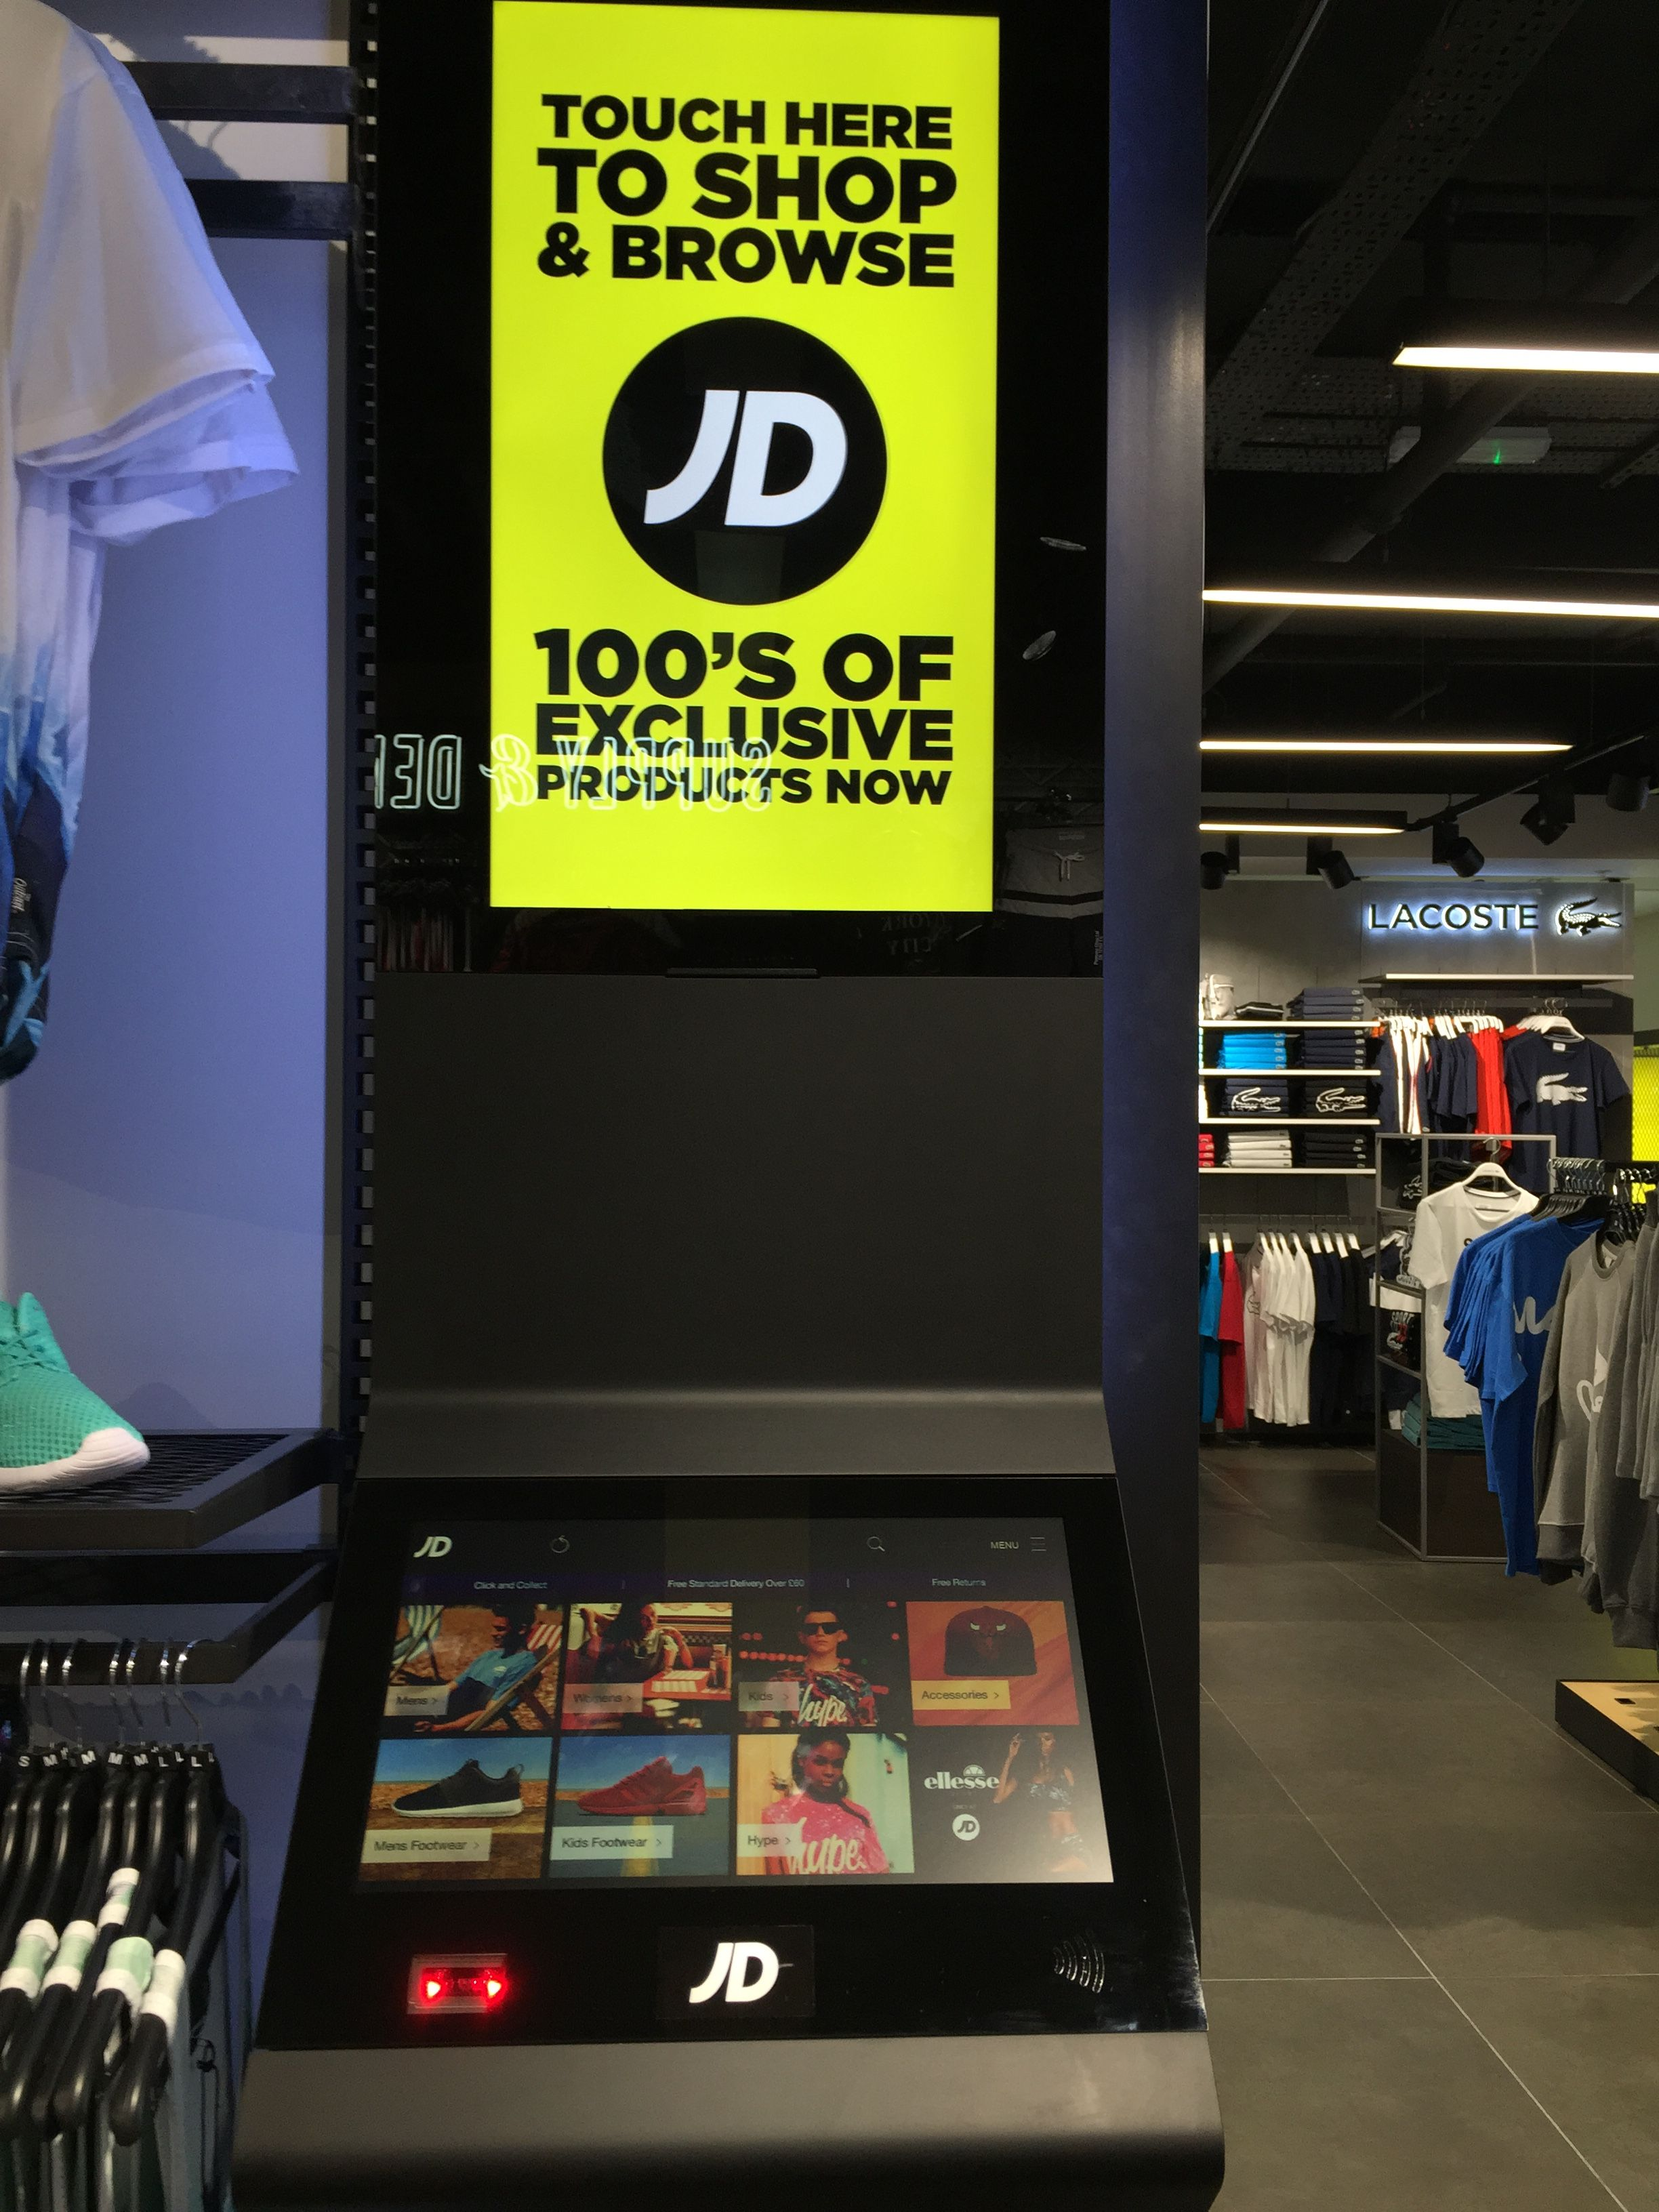 A more traditional touchscreen kiosk to shop and browse